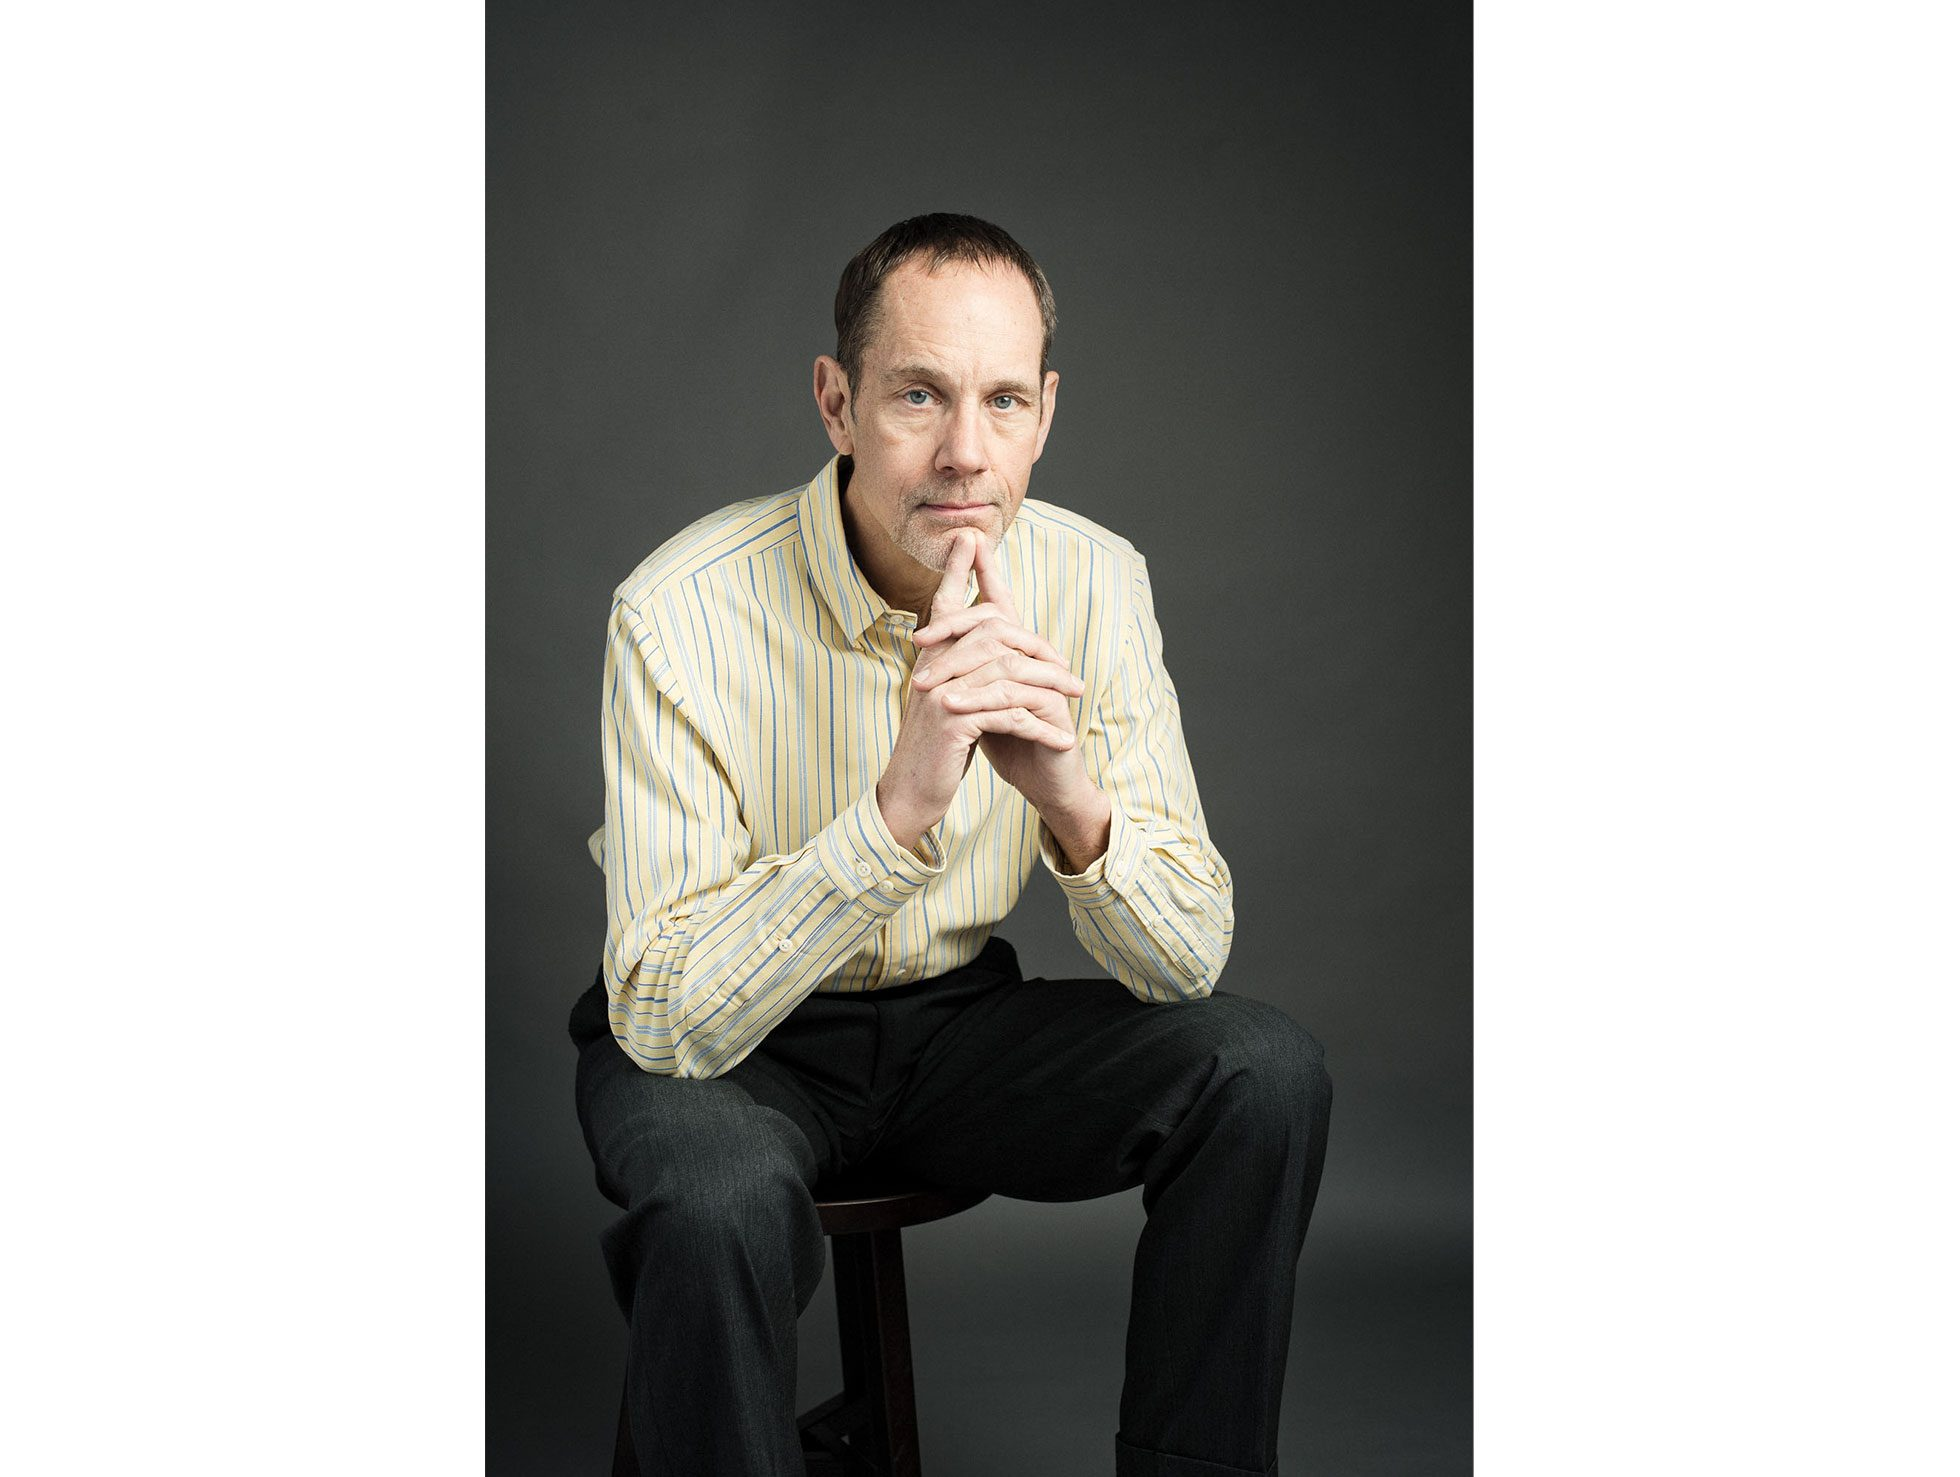 A portrait of Tim Ryan of Ryan Career Consulting, an entrepreneur. He sits on a stool and appears to be deep in thought with his steepled fingers near his lips.Personal branding and headshot session sample.